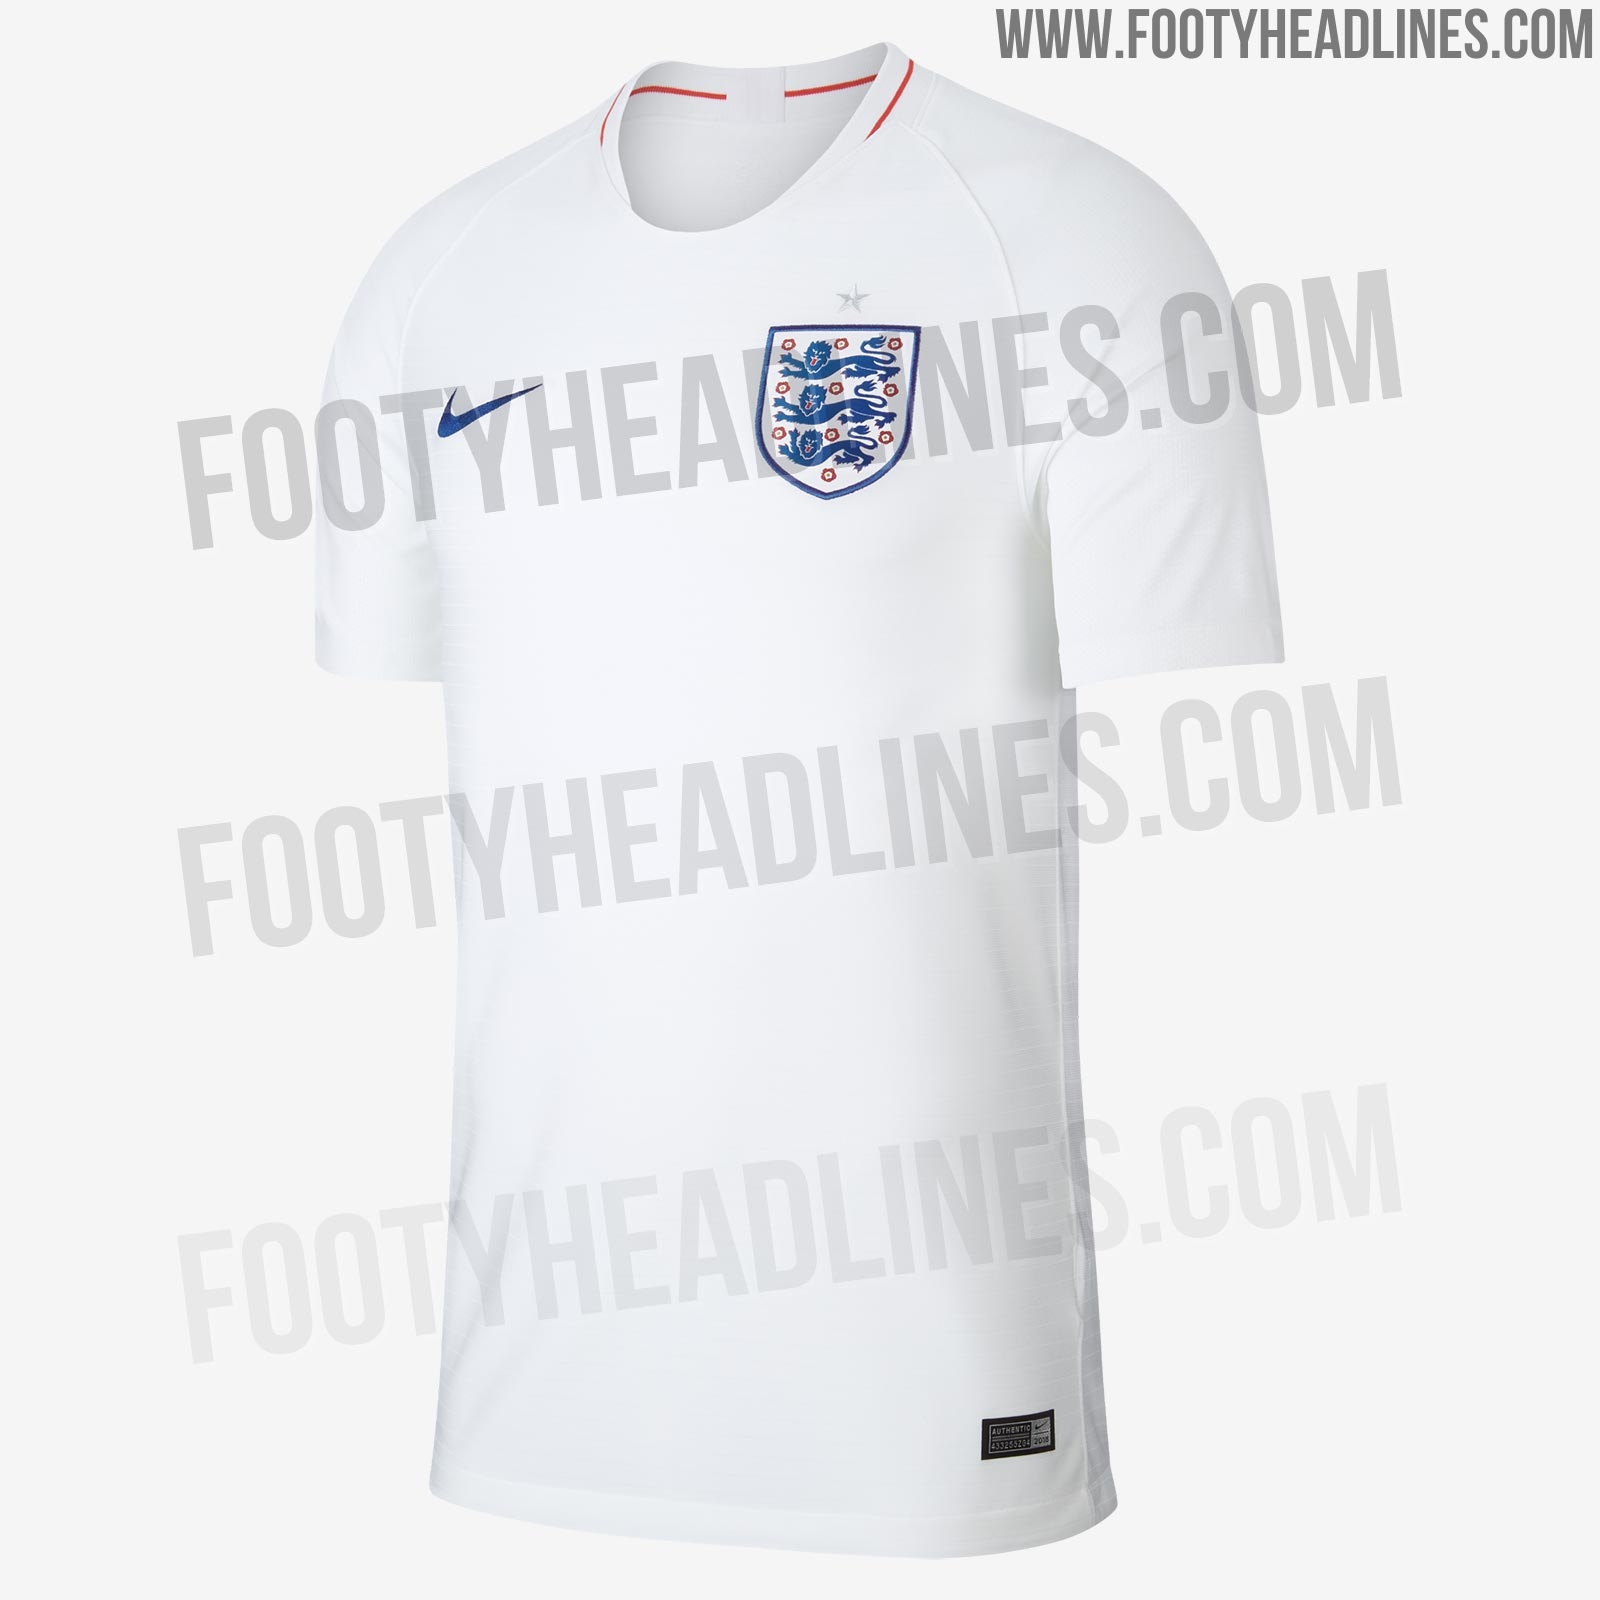 Beautiful England Kit World Cup 2018 - england-2018-world-cup-home-kit-2  Collection_99891 .jpg